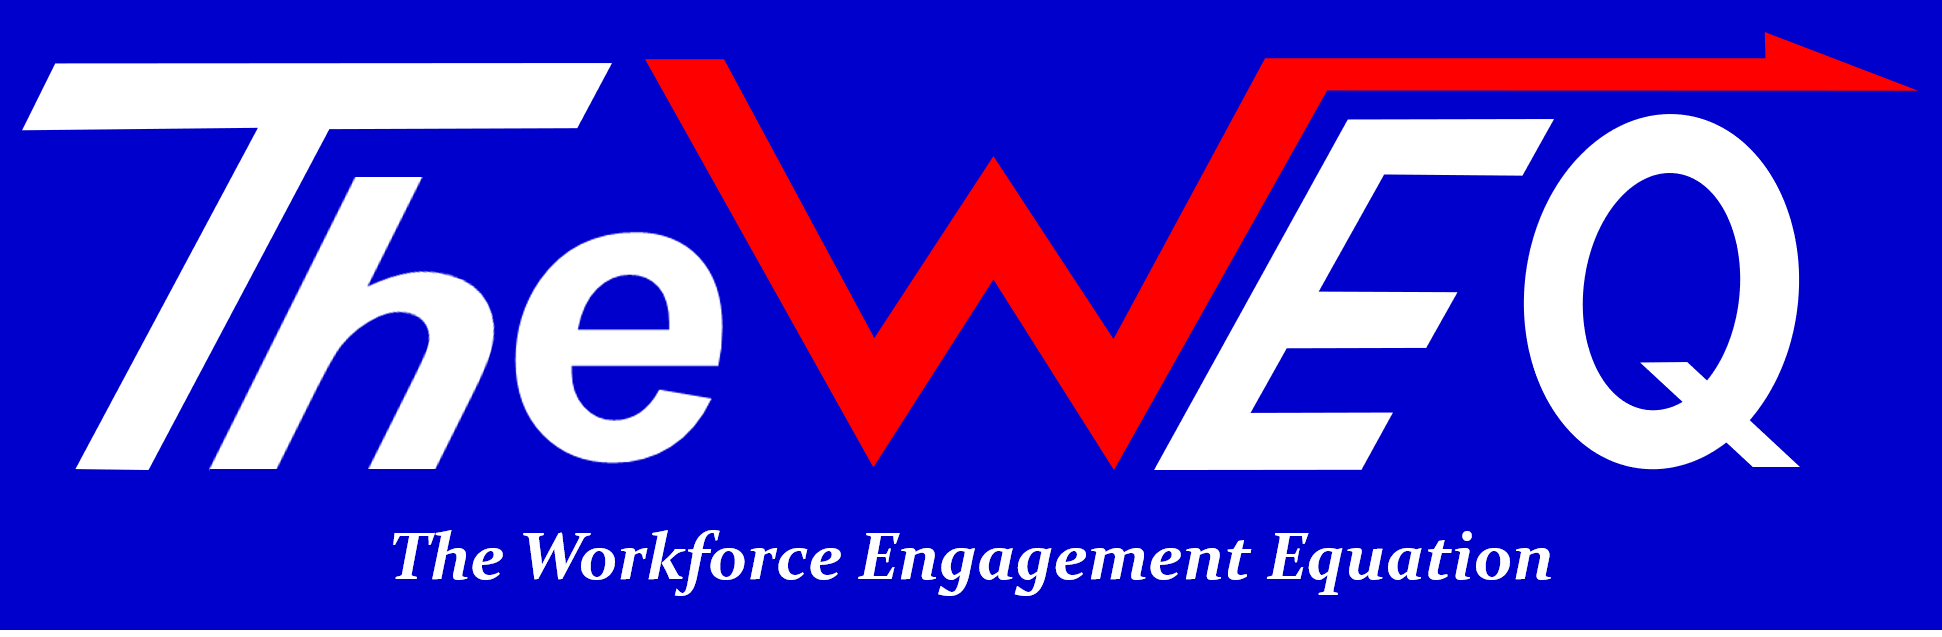 The Workforce Engagement Equation Logo